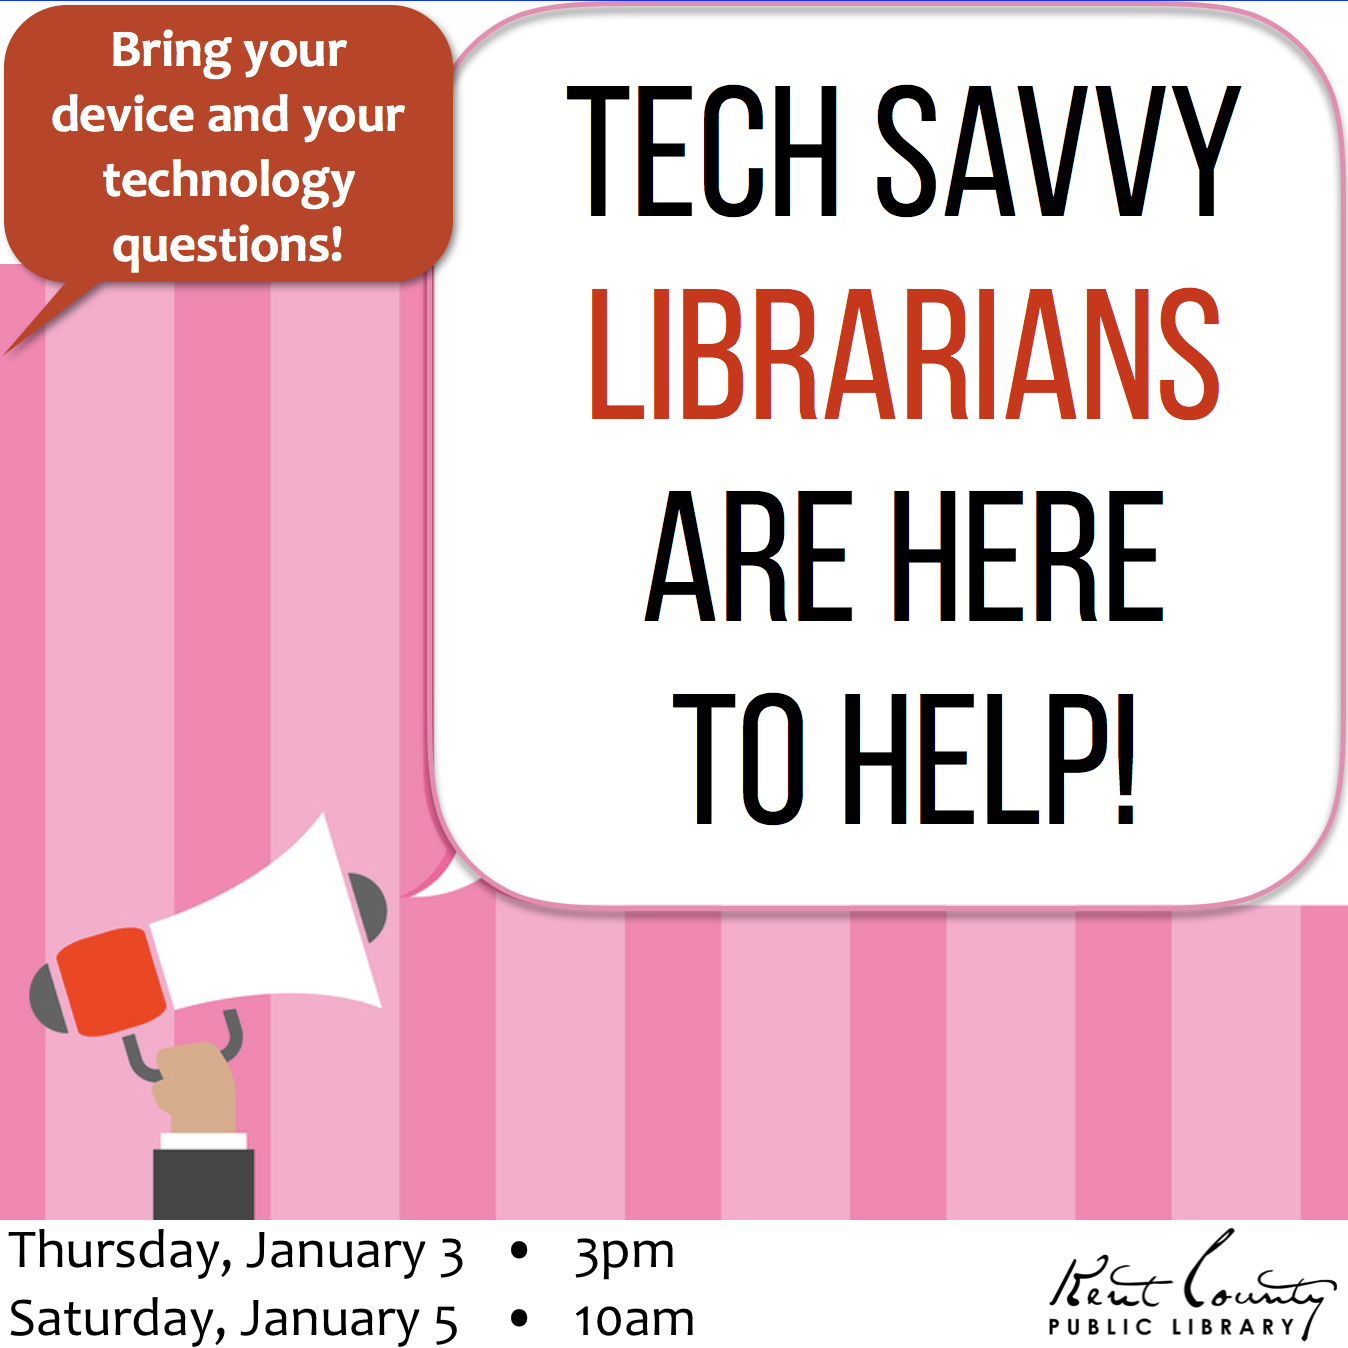 Tech Savvy Librarians Are Here to Help!